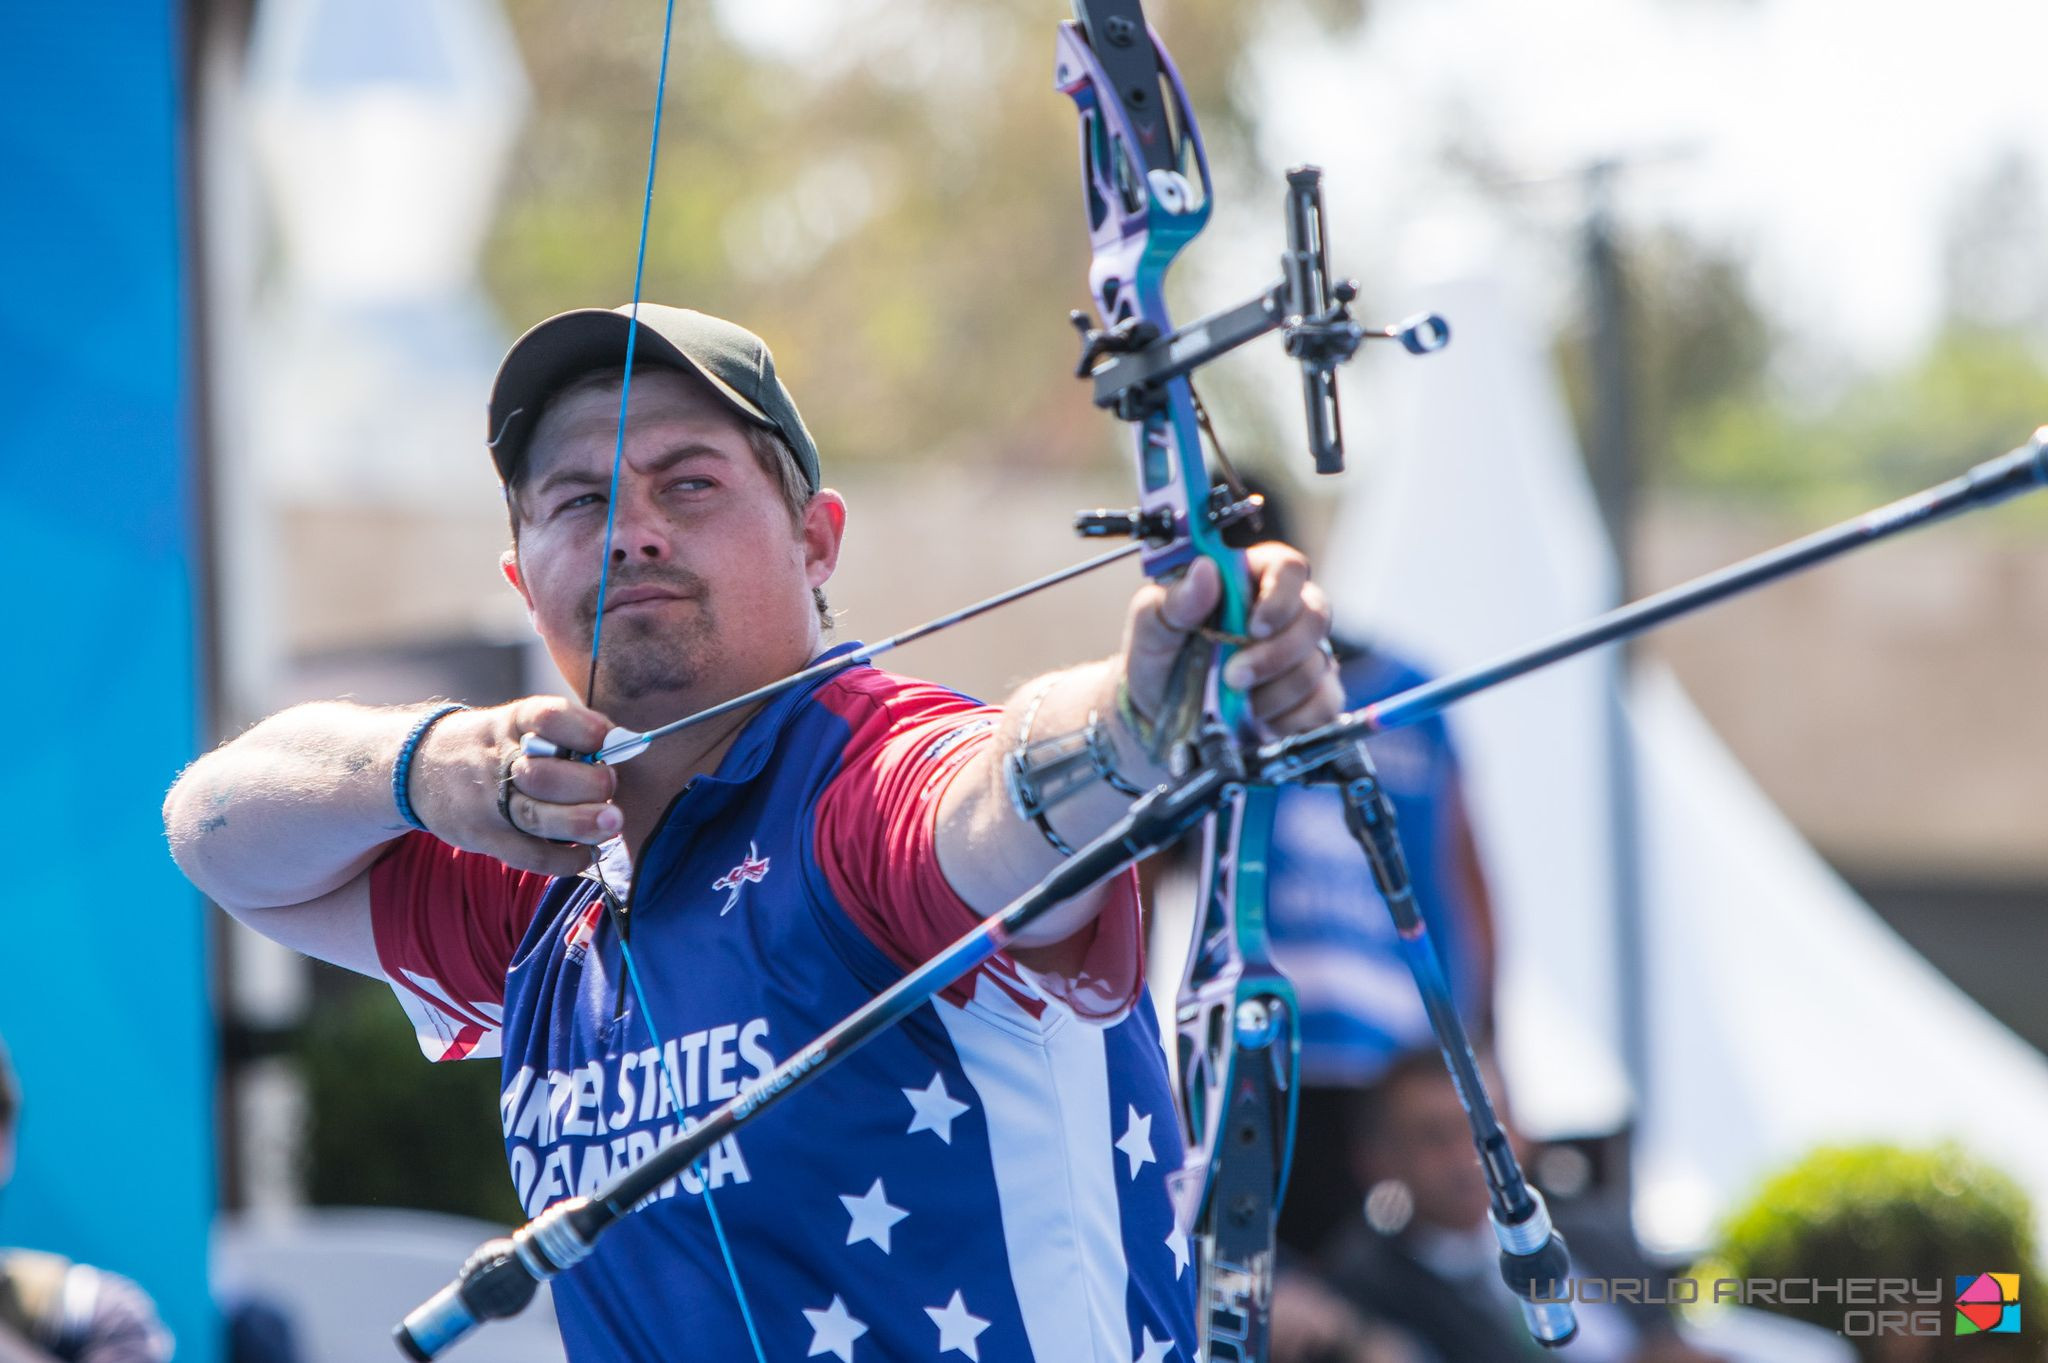 Brady Ellison came out on top in the men's recurve standings ©Getty Images